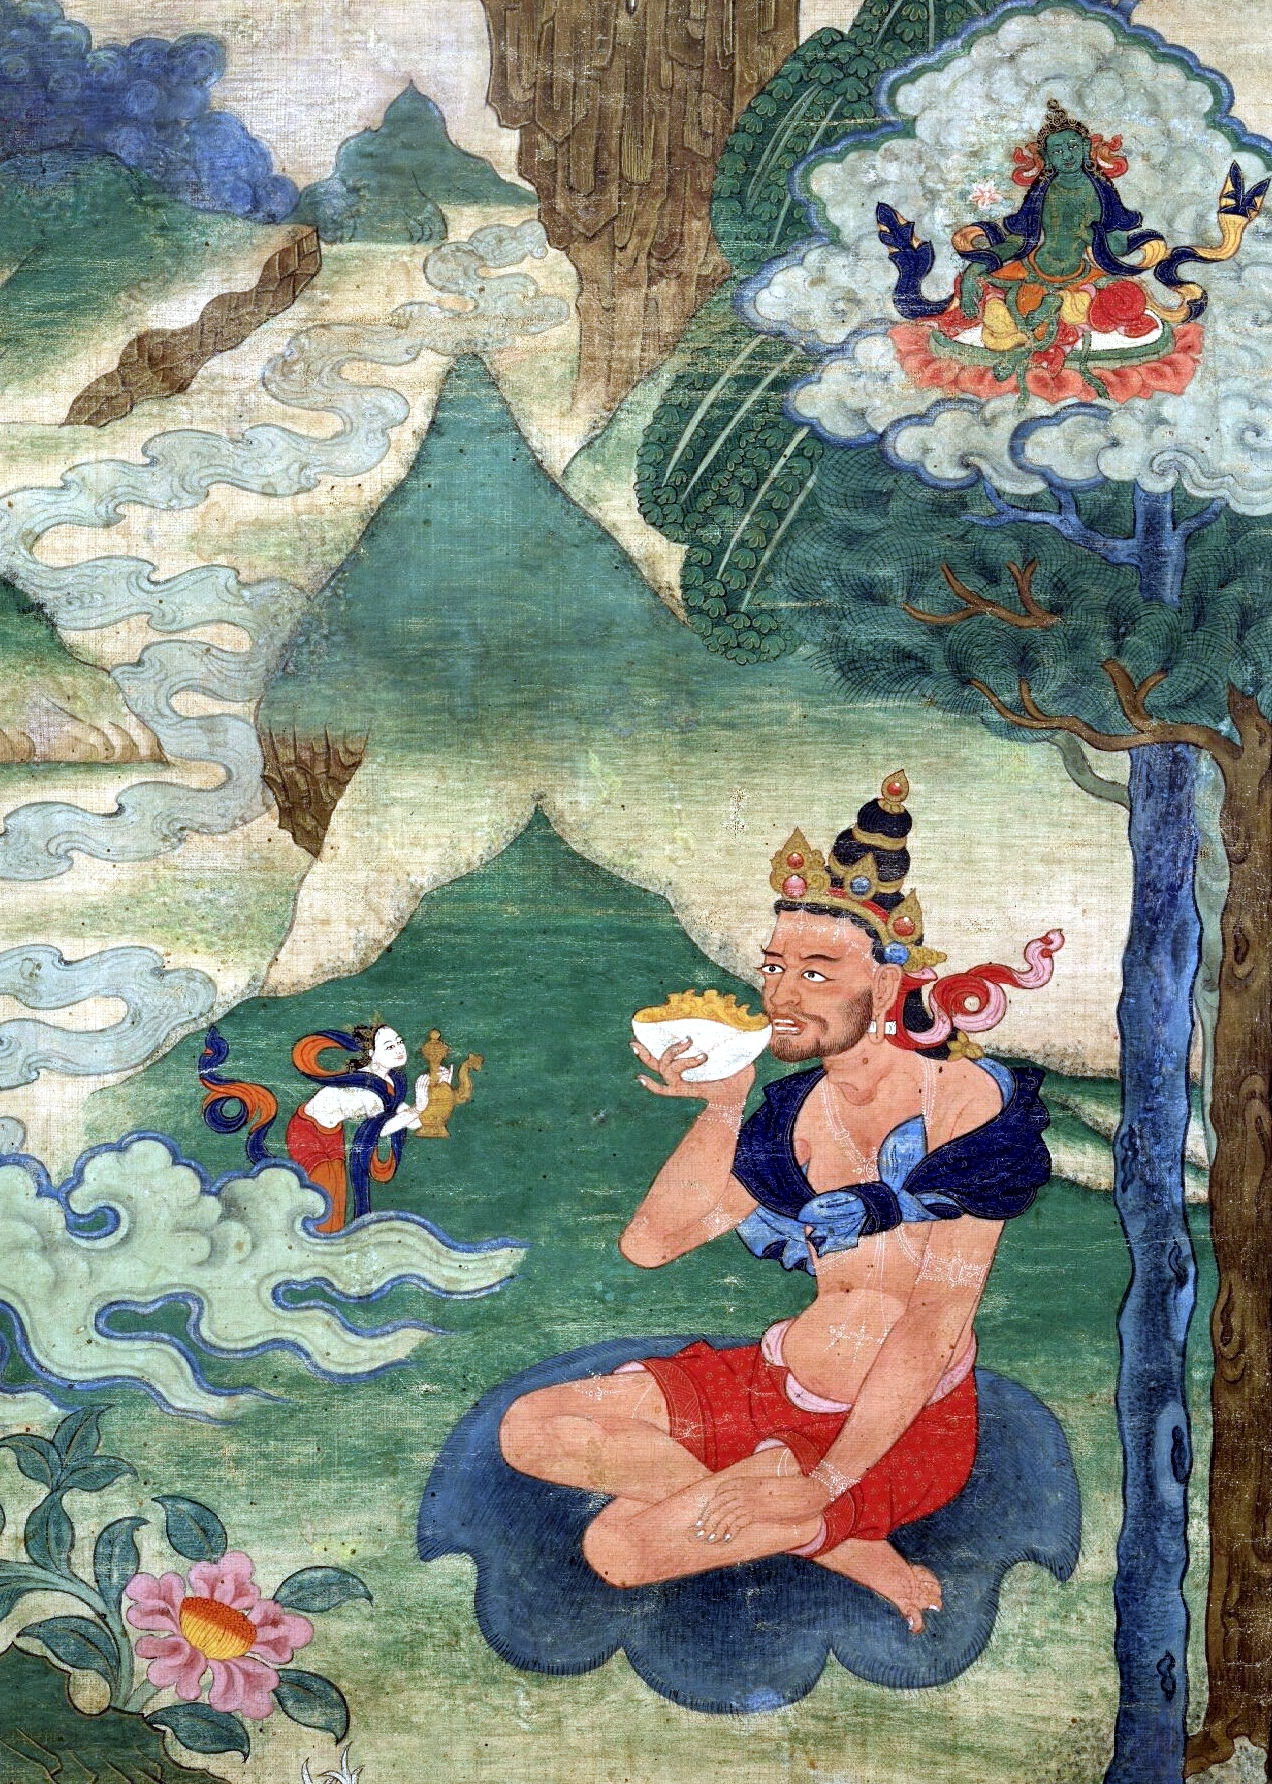 http://upload.wikimedia.org/wikipedia/commons/5/5b/Mahasiddha_Naropa.jpg